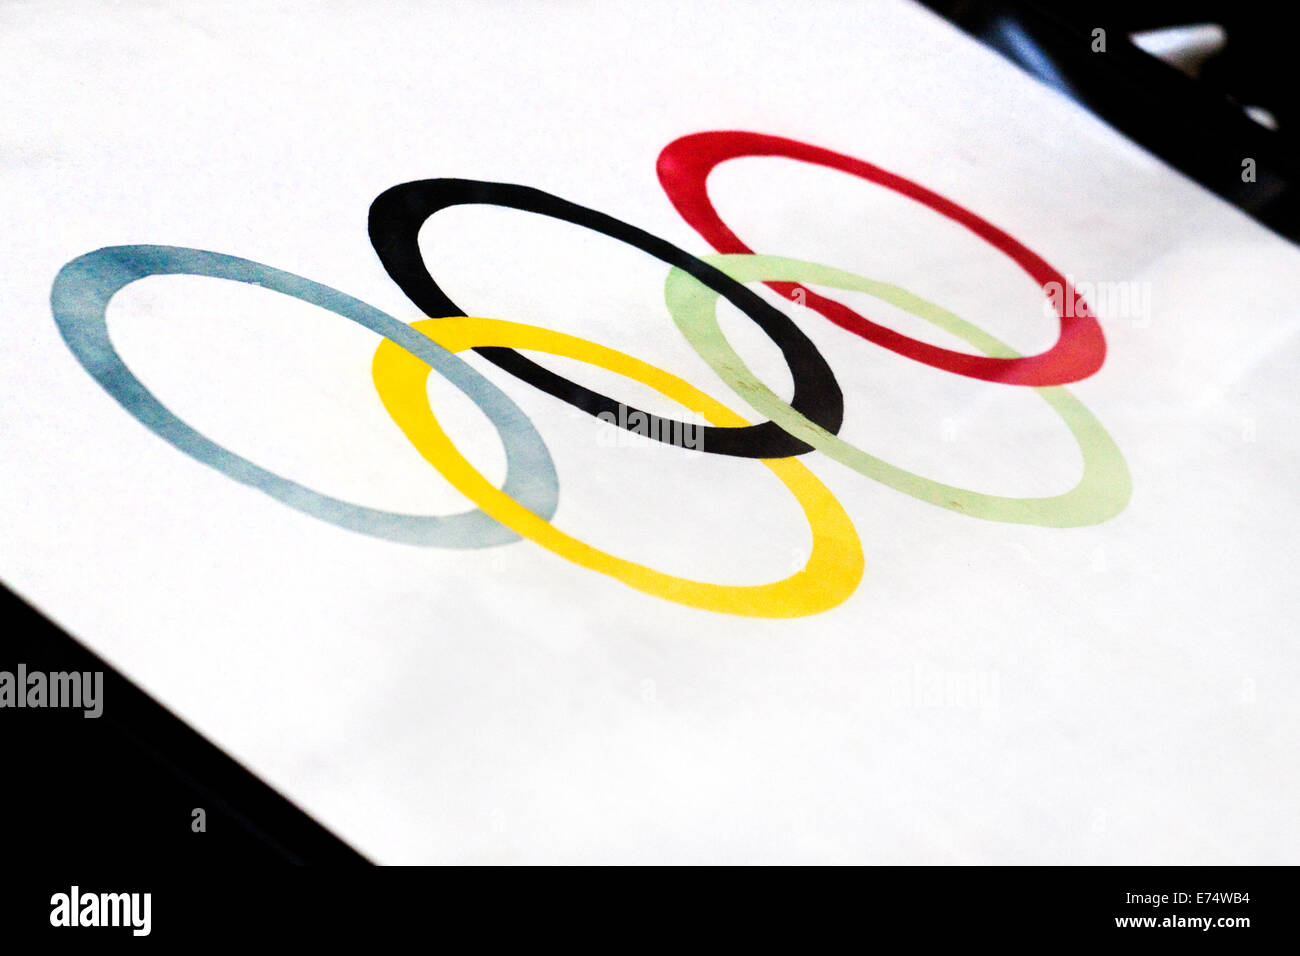 The only surviving example of the very first Olympic flag from 1920, on display inside Antwerp City Hall, Belgium. - Stock Image